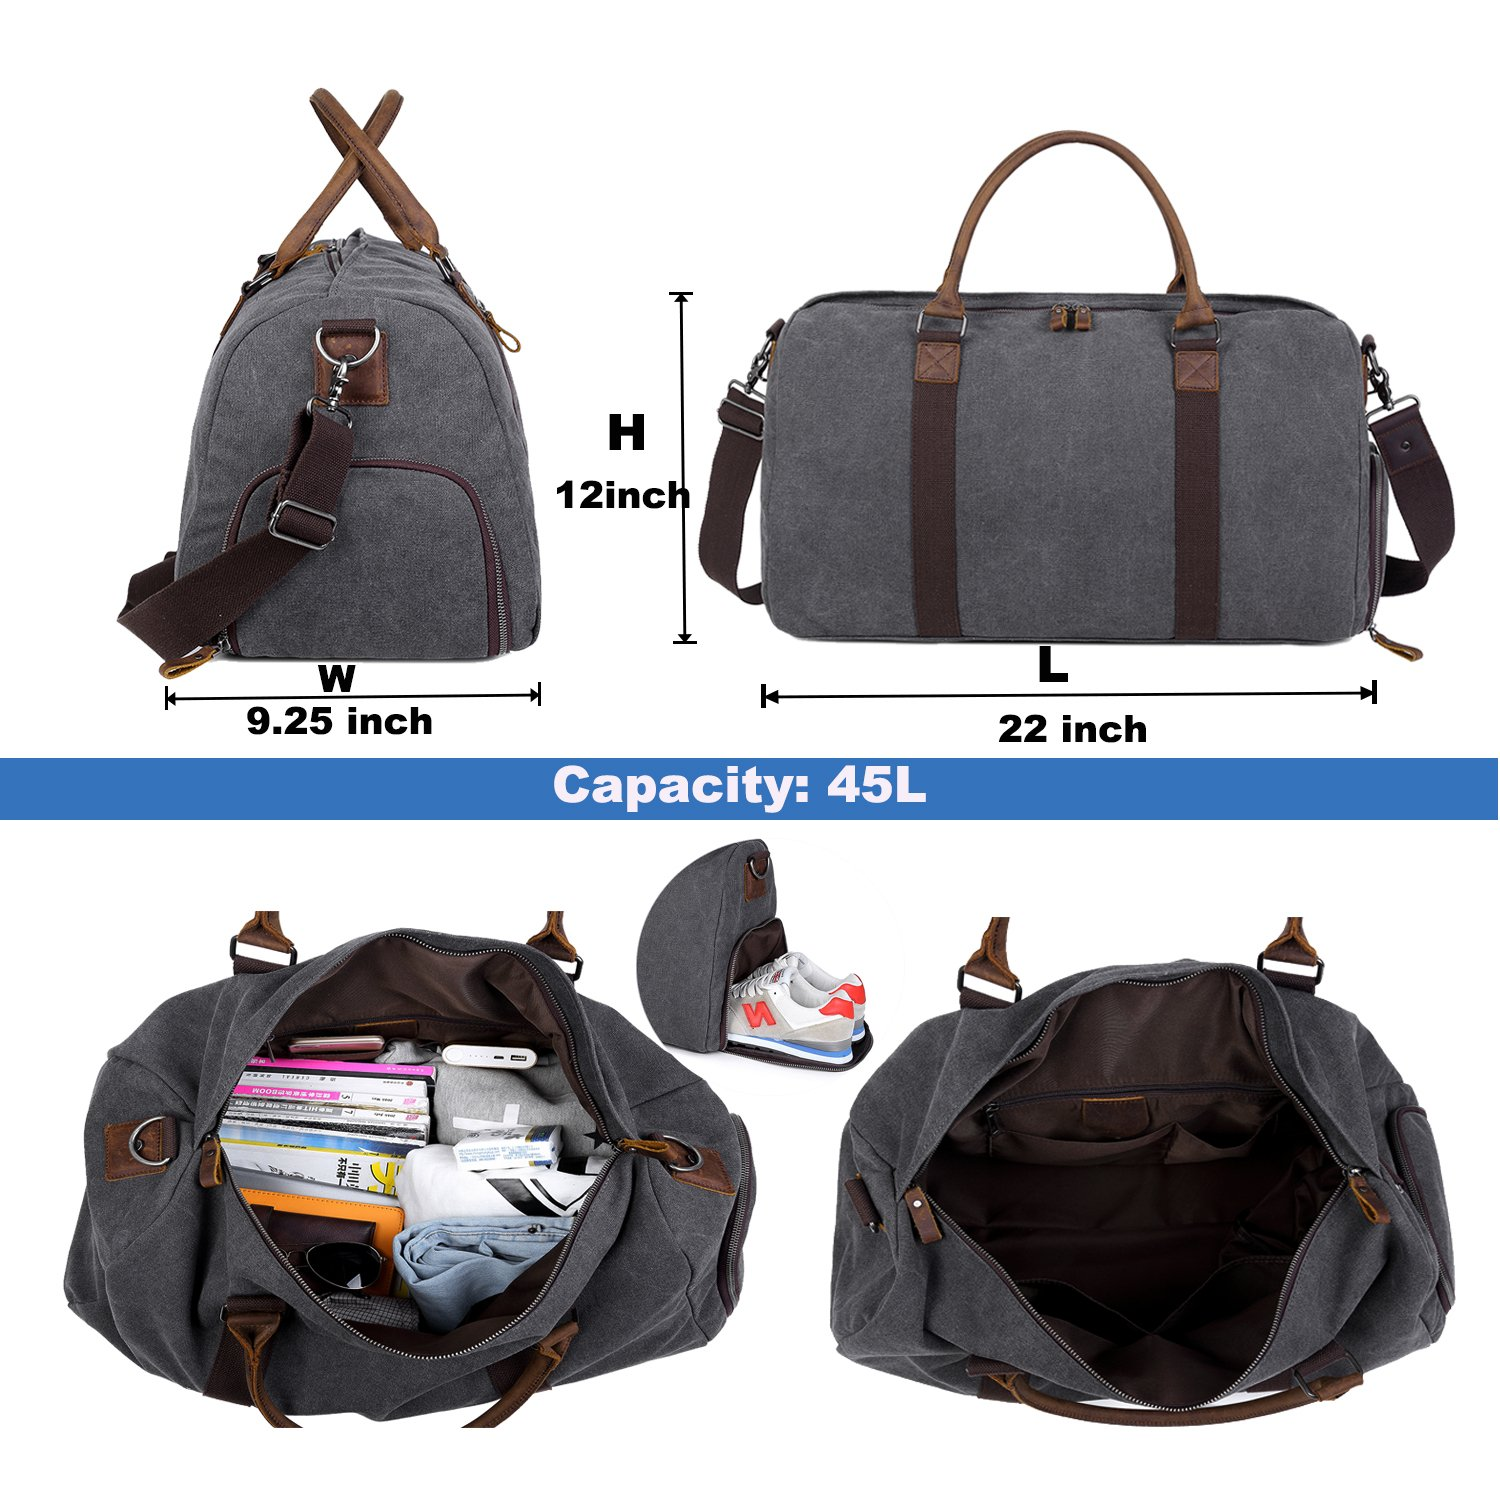 Weekender Overnight Bag Men Canvas Duffel Bag with shoes compartment Carry on Travel Tote bag luggage